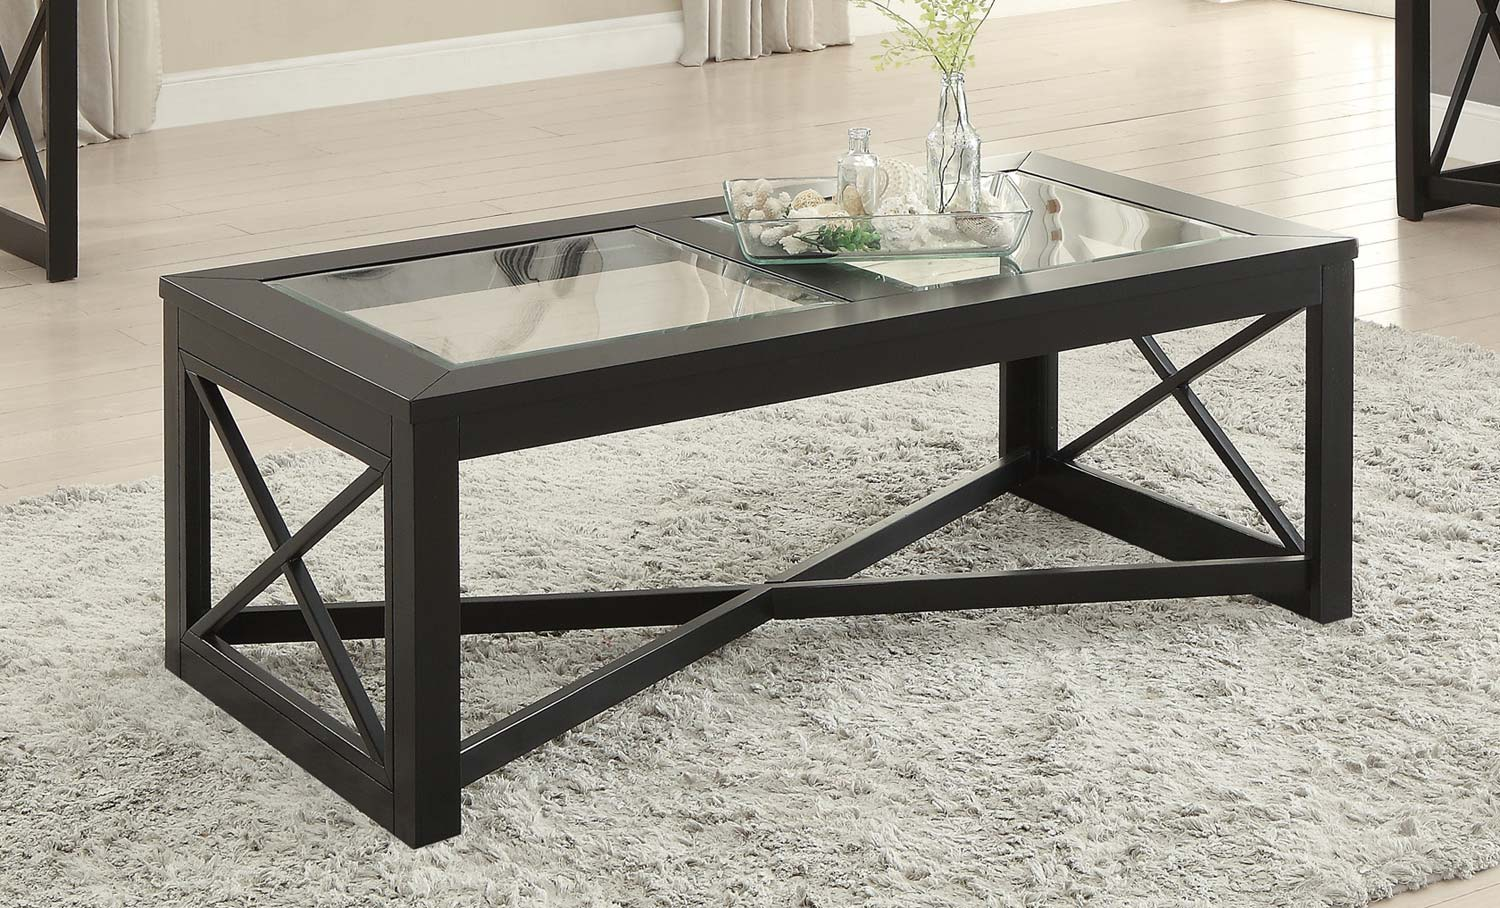 Homelegance Berlin Cocktail Table with Glass Insert - Black Finished Frames